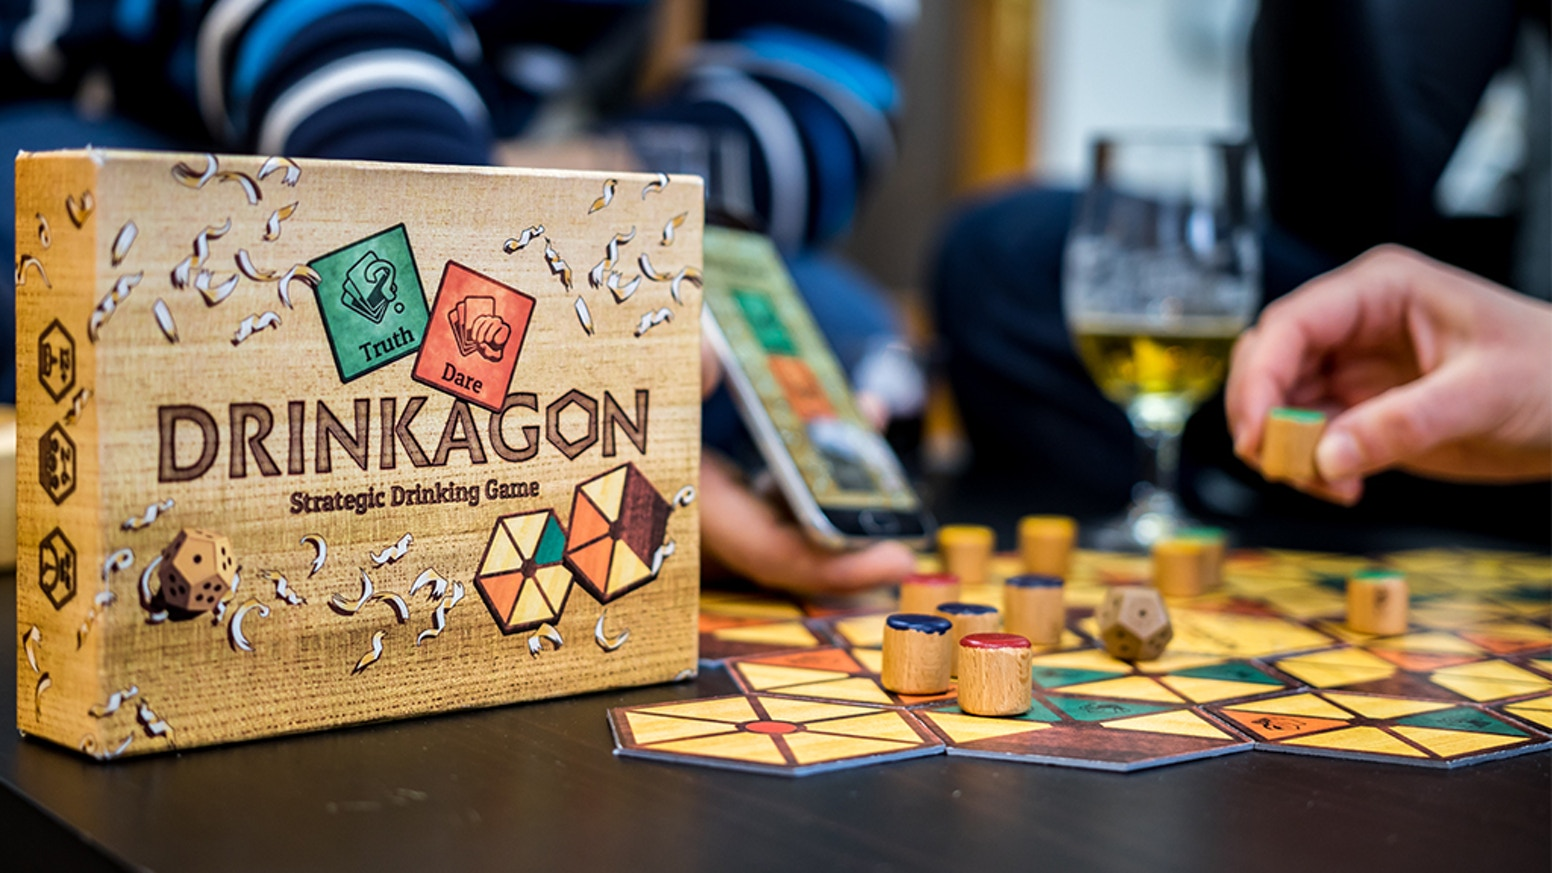 Board game for up to 8players that combines drinking vs. truth & dare and strategic thinking.